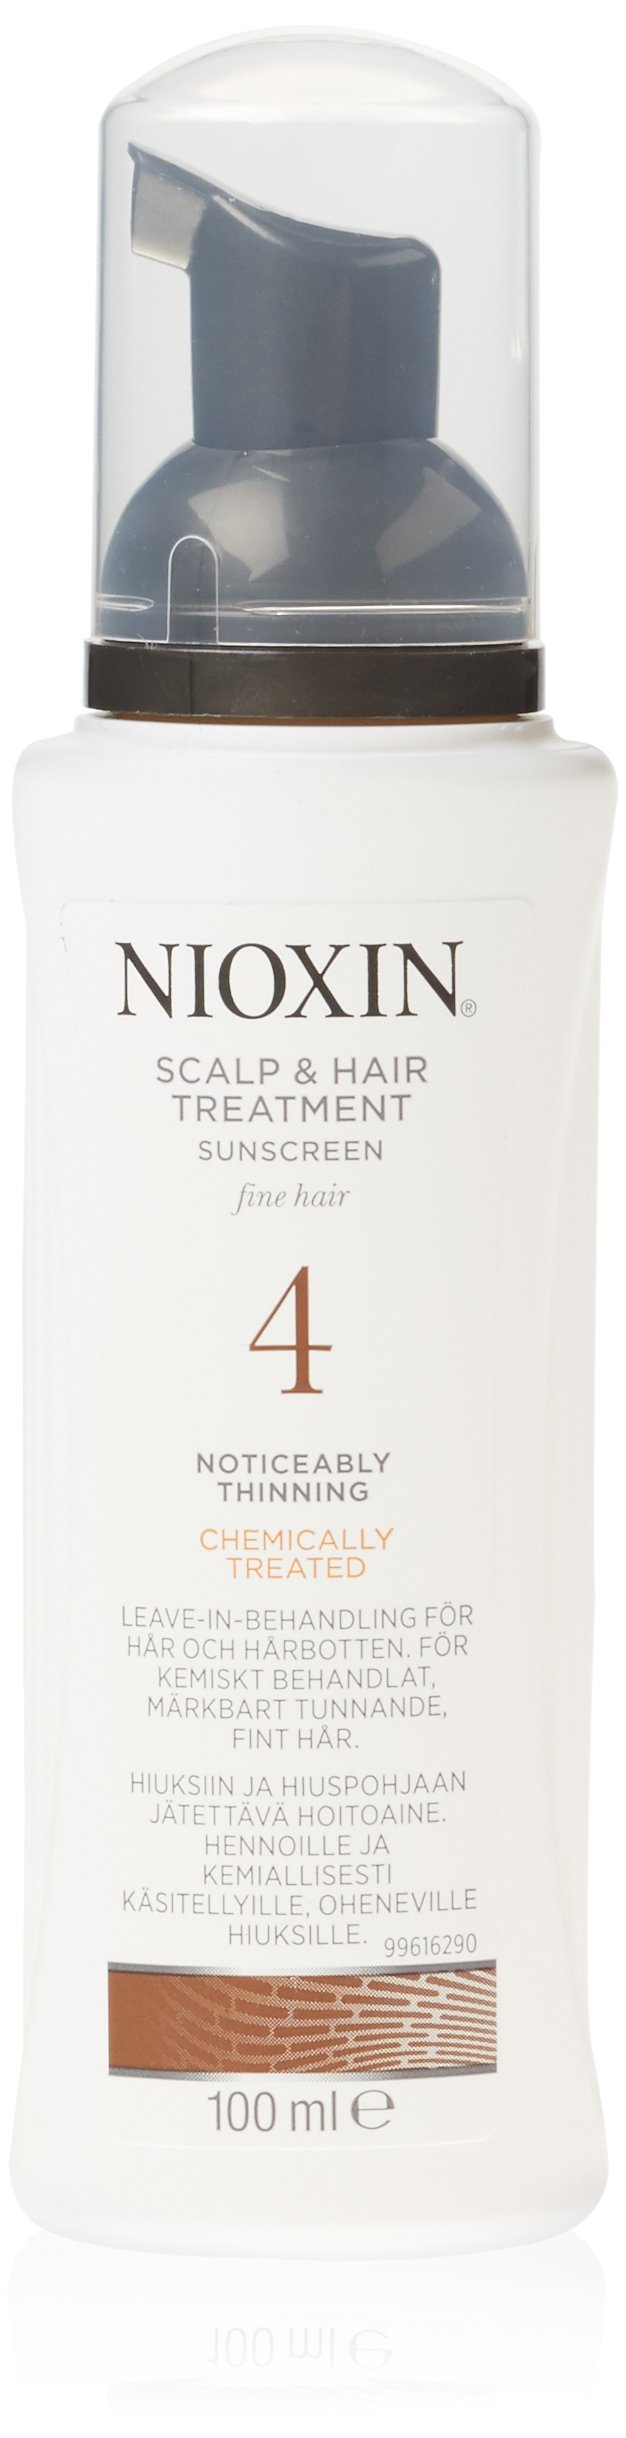 Nioxin Scalp Treatment System 4 100 ml product image